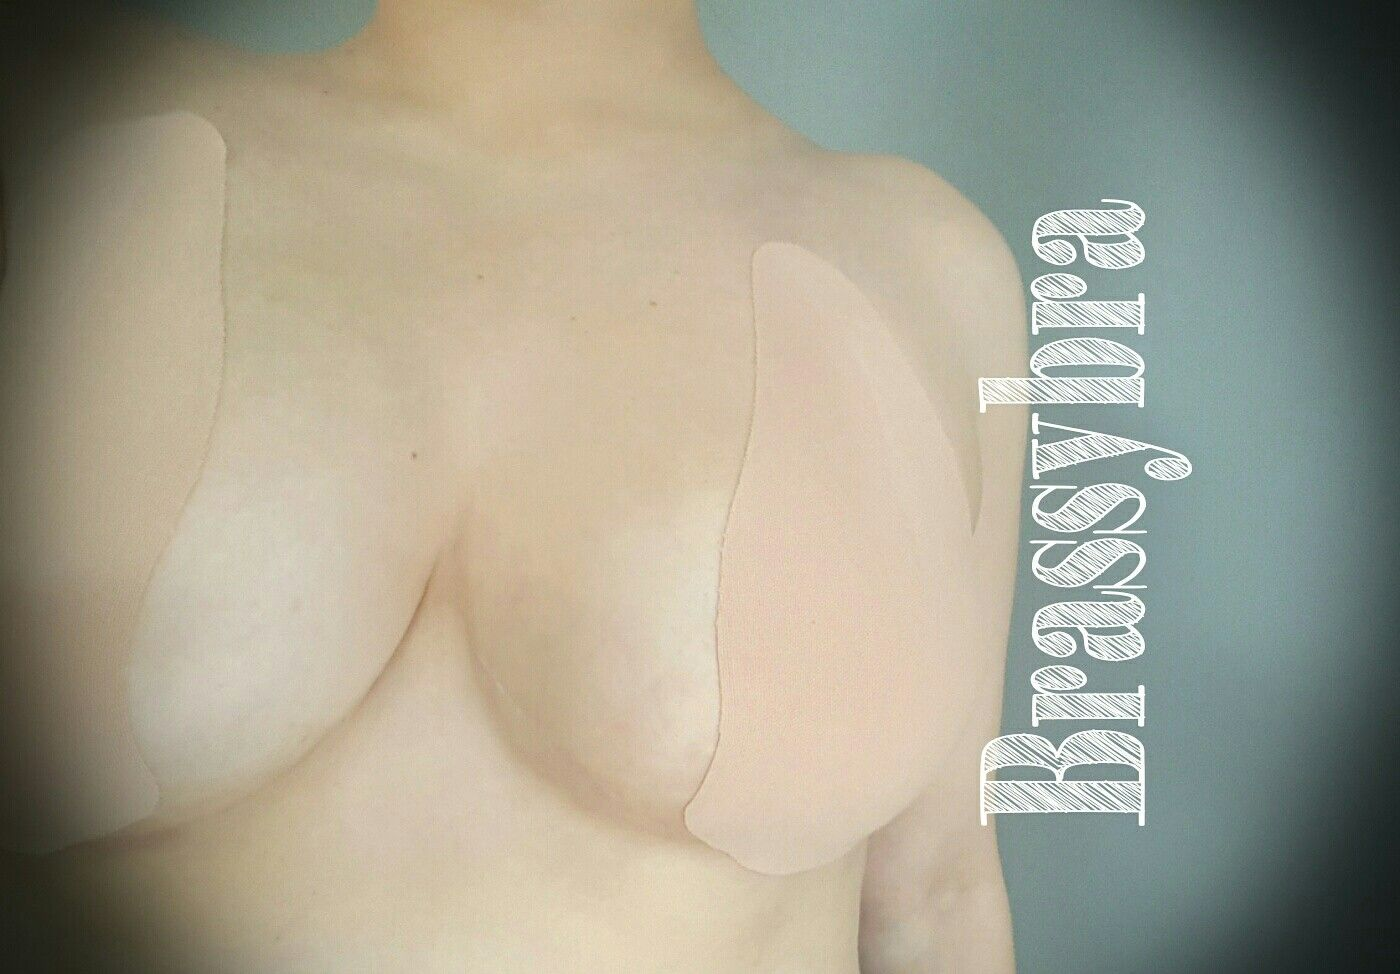 9978caf72a Adhesive breast lift tape. The best invisible boob tape❤ from Brassybra.com  A-G Cup It s also danse proof and waterproof. Adhesive bra  breast tape   boob ...